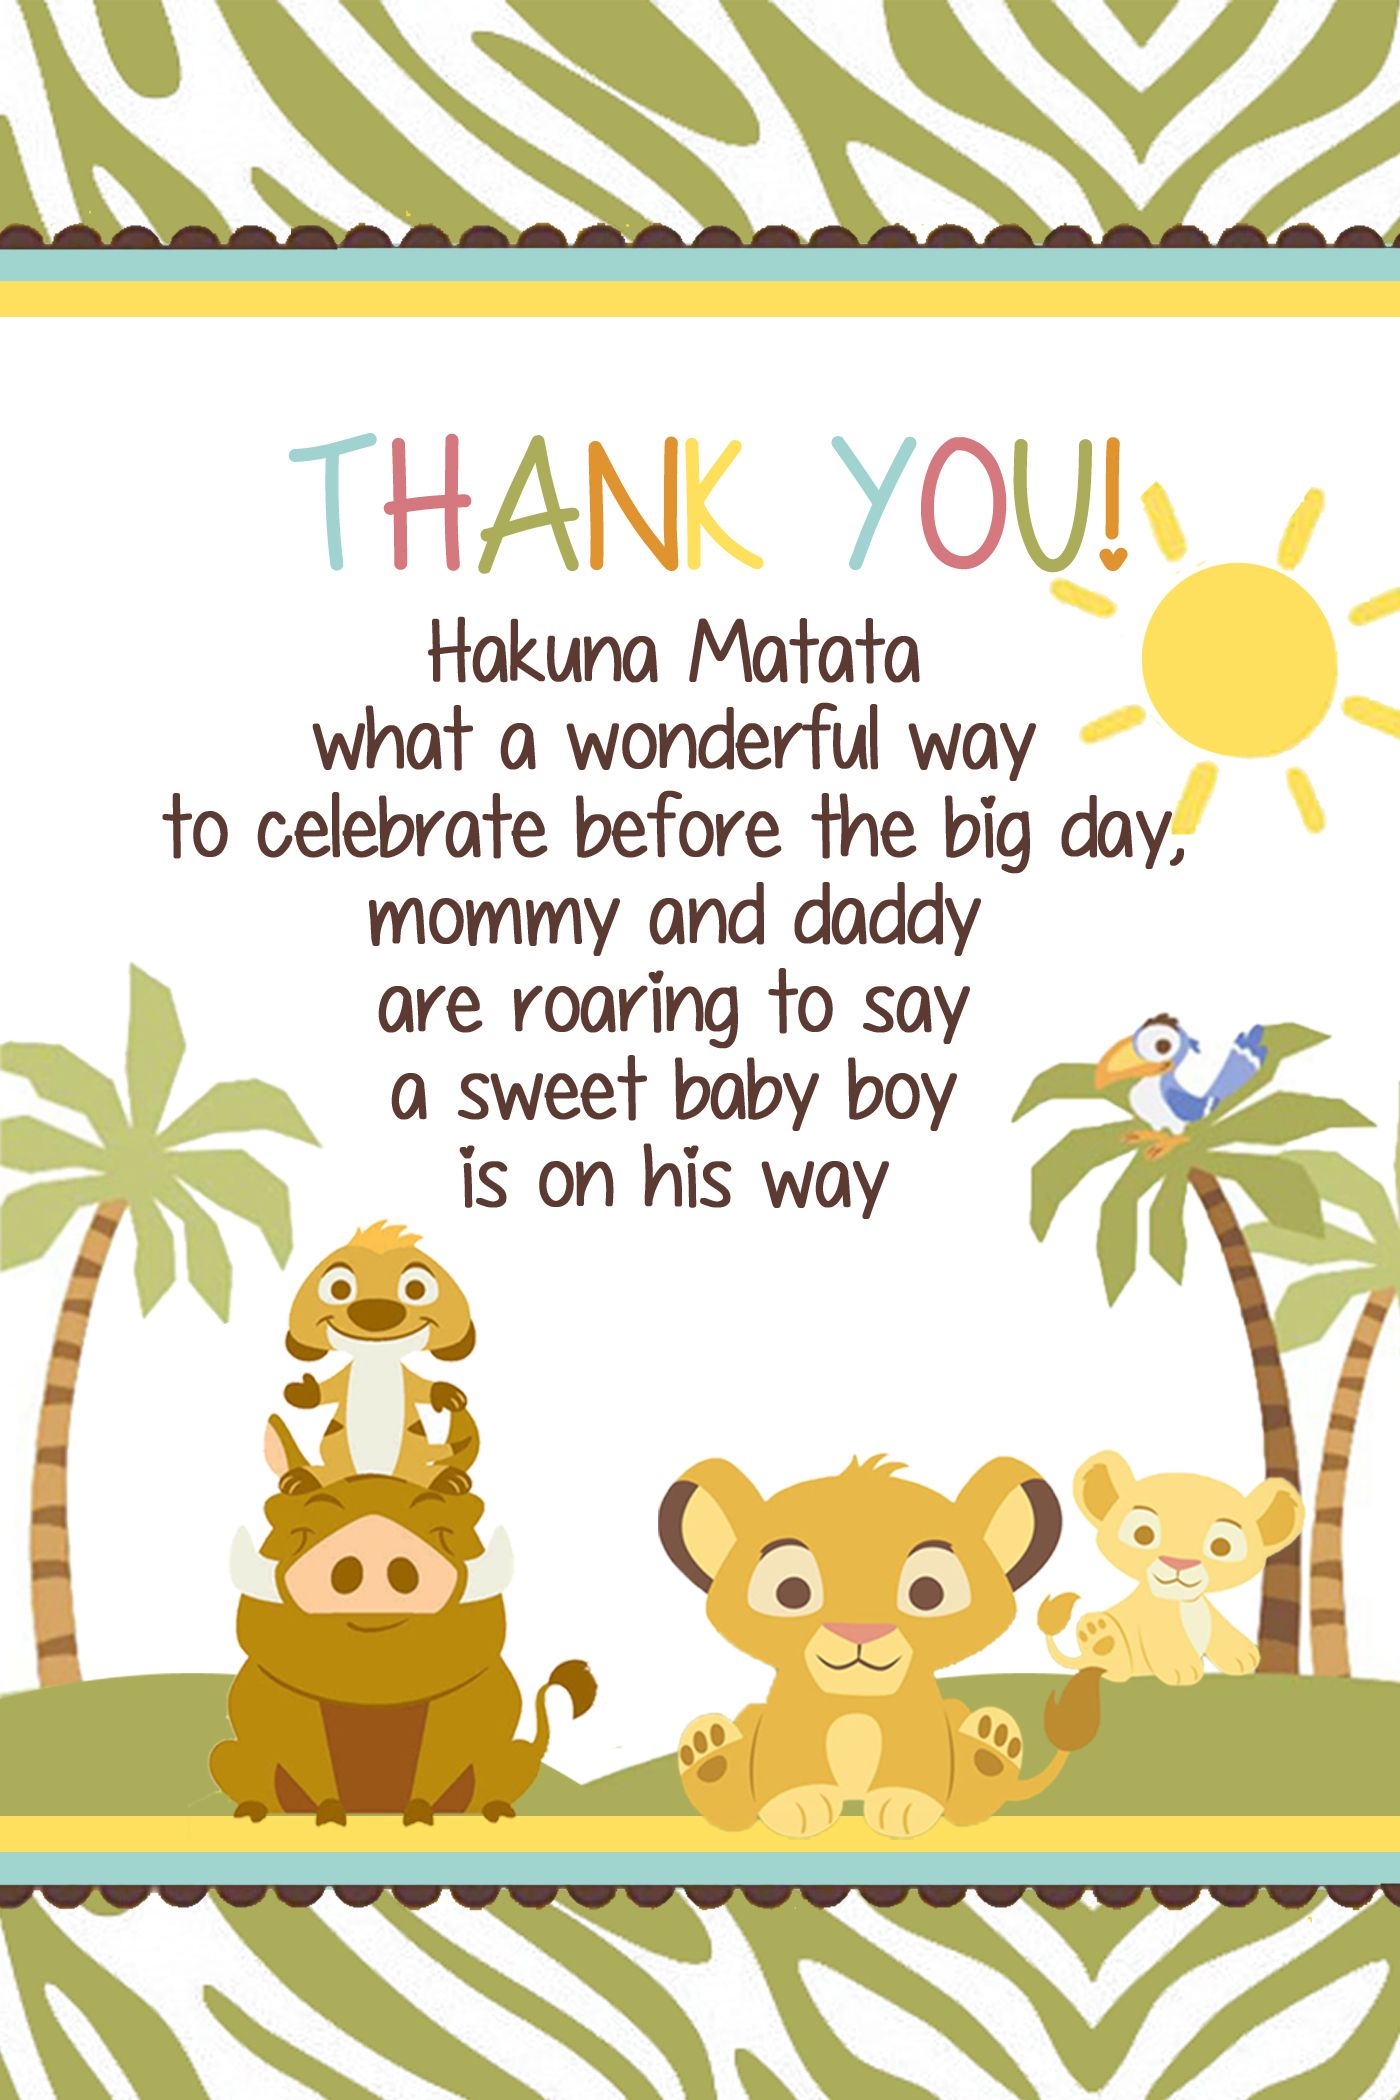 Simba Lion King Baby shower thank you card $4.50 available at www ...